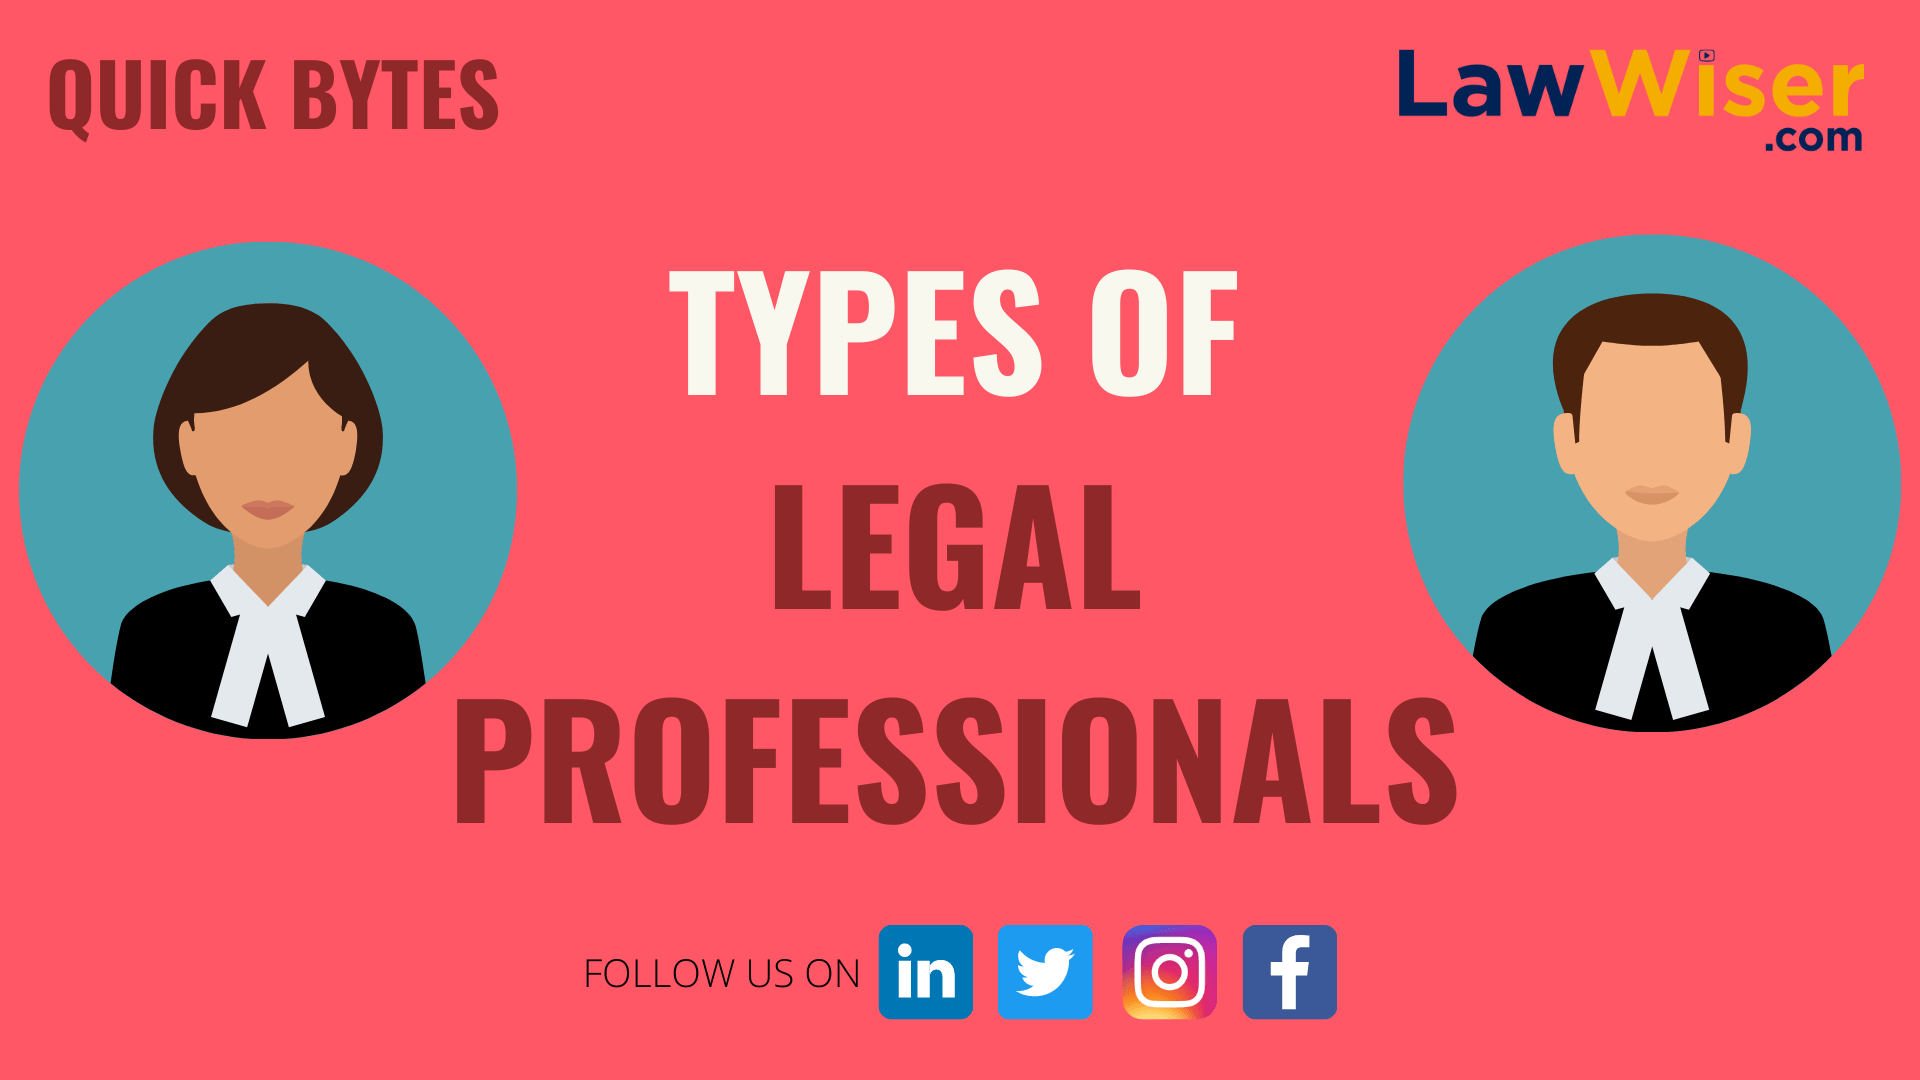 Types of Legal Professionals | LawWiser - #QuickBytes